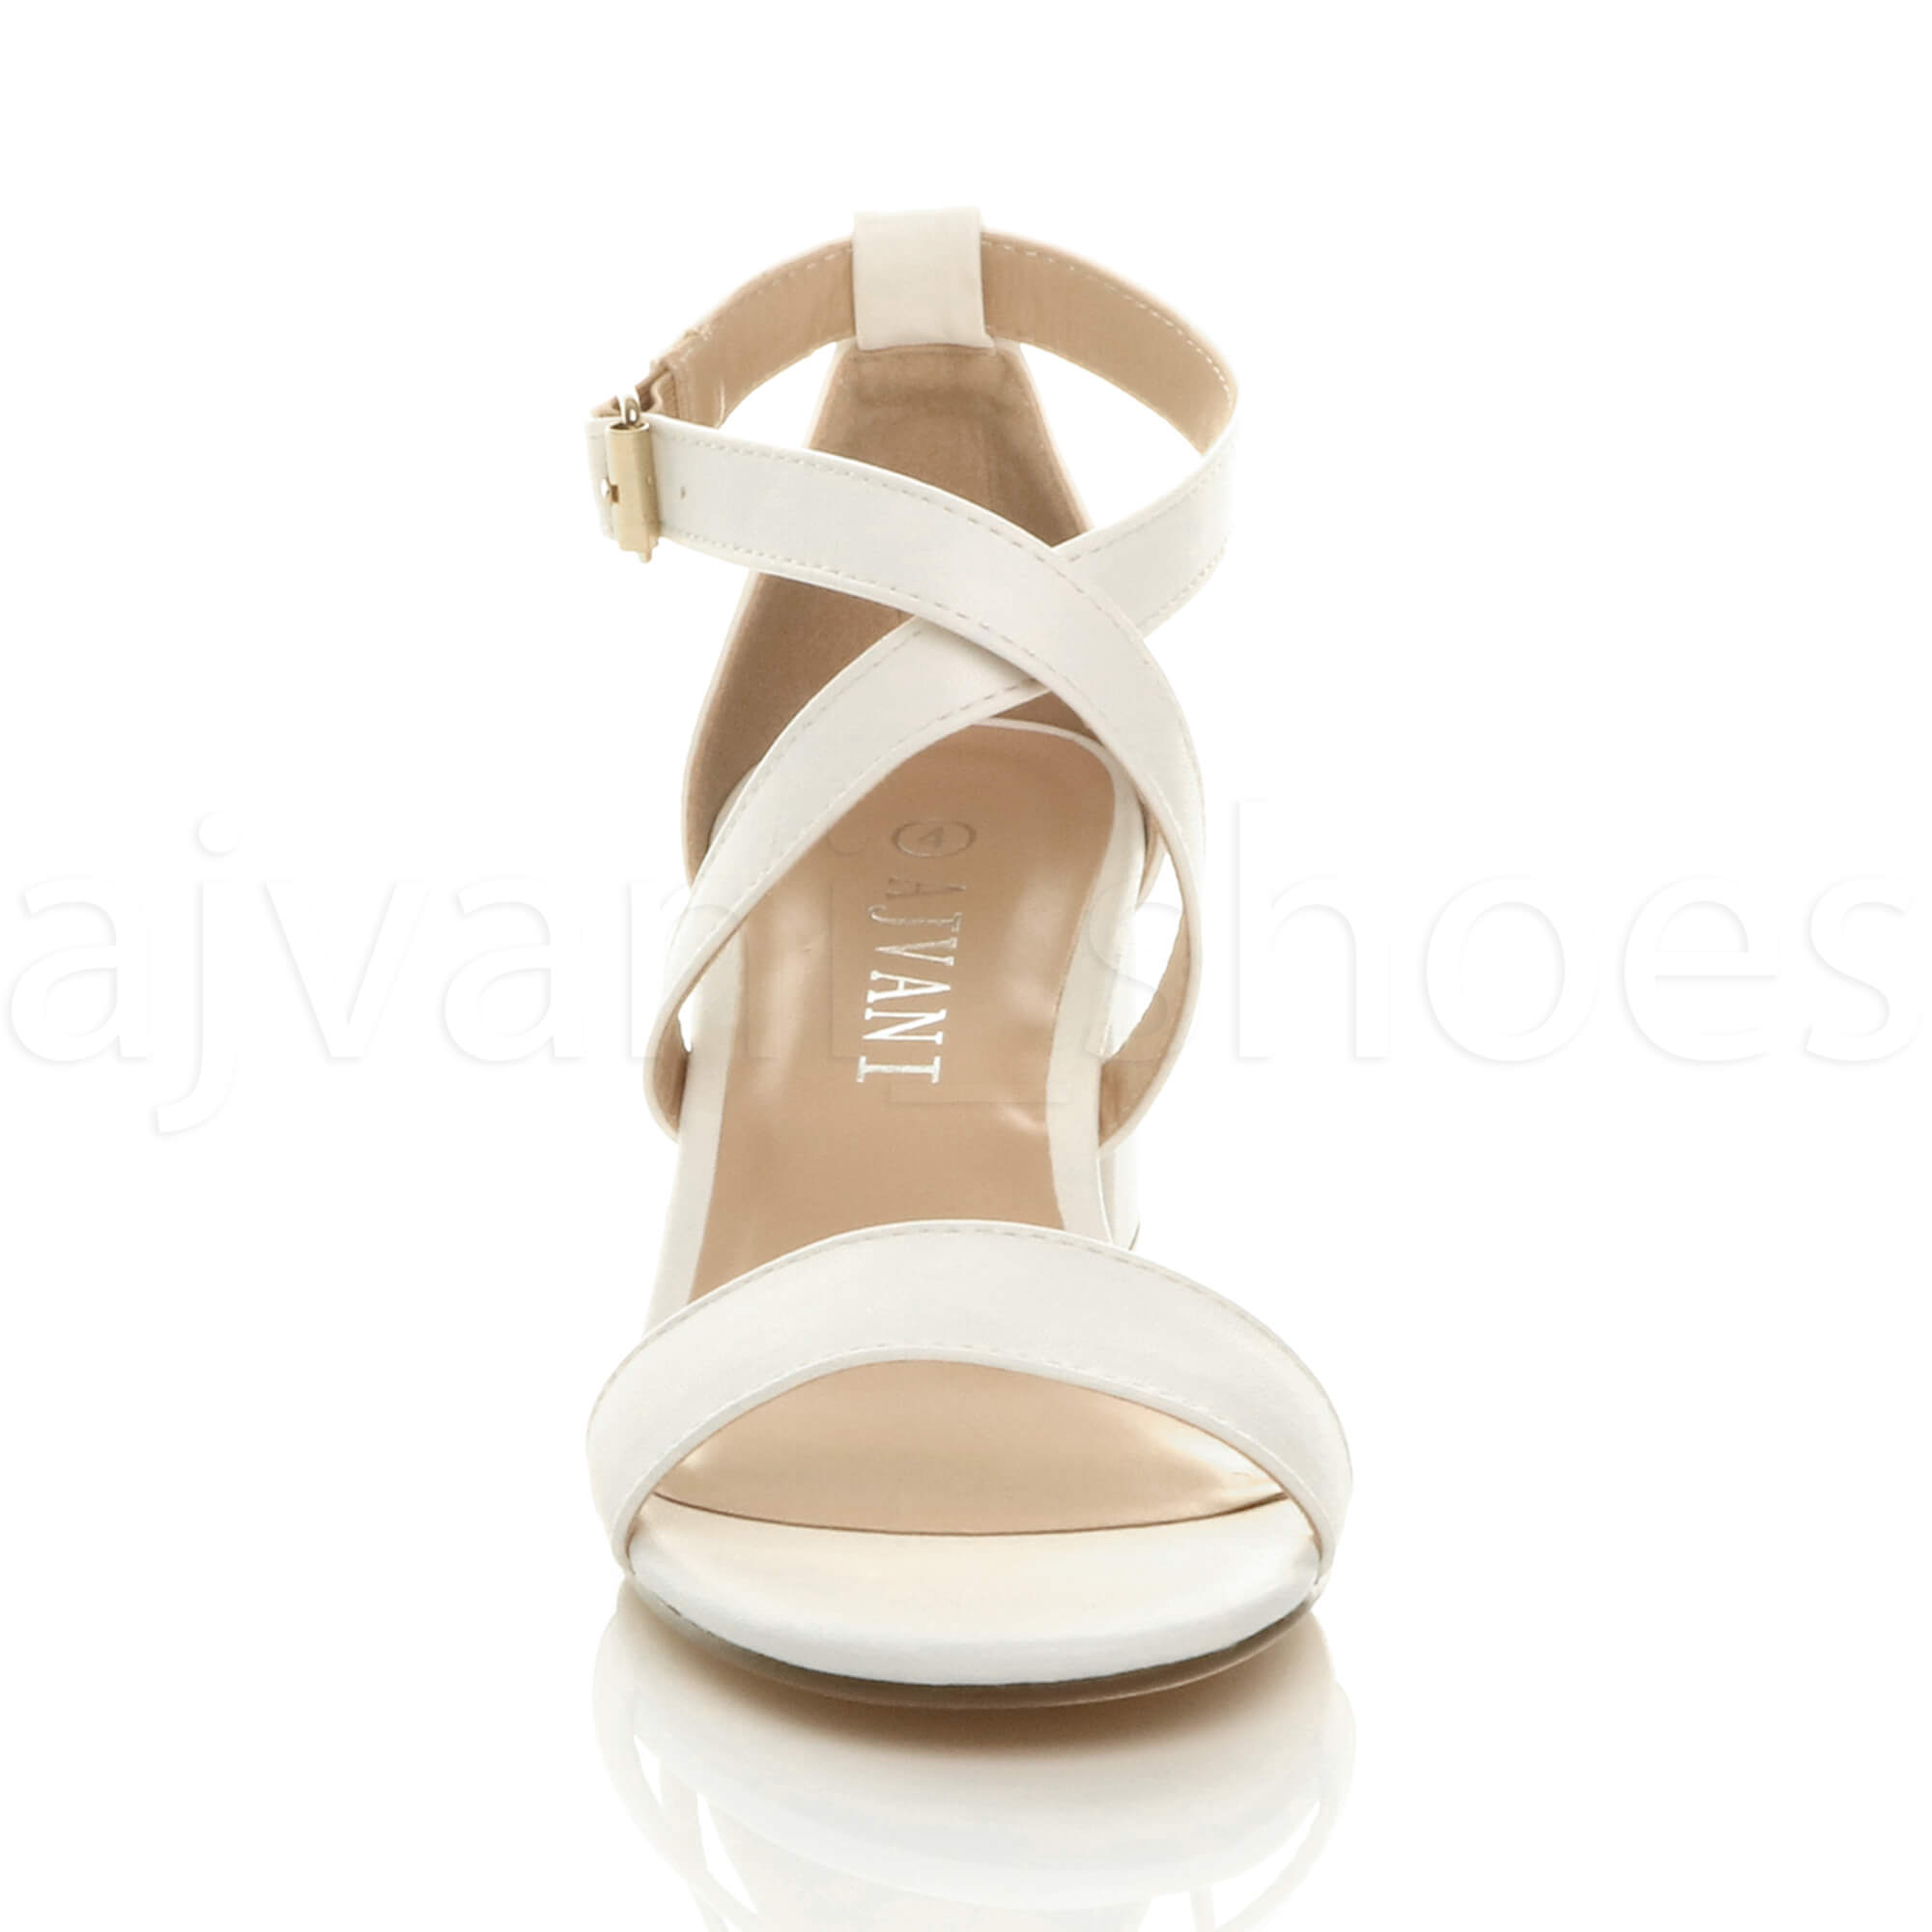 WOMENS-LADIES-MID-LOW-BLOCK-HEEL-CROSS-STRAPS-PARTY-STRAPPY-SANDALS-SHOES-SIZE thumbnail 102